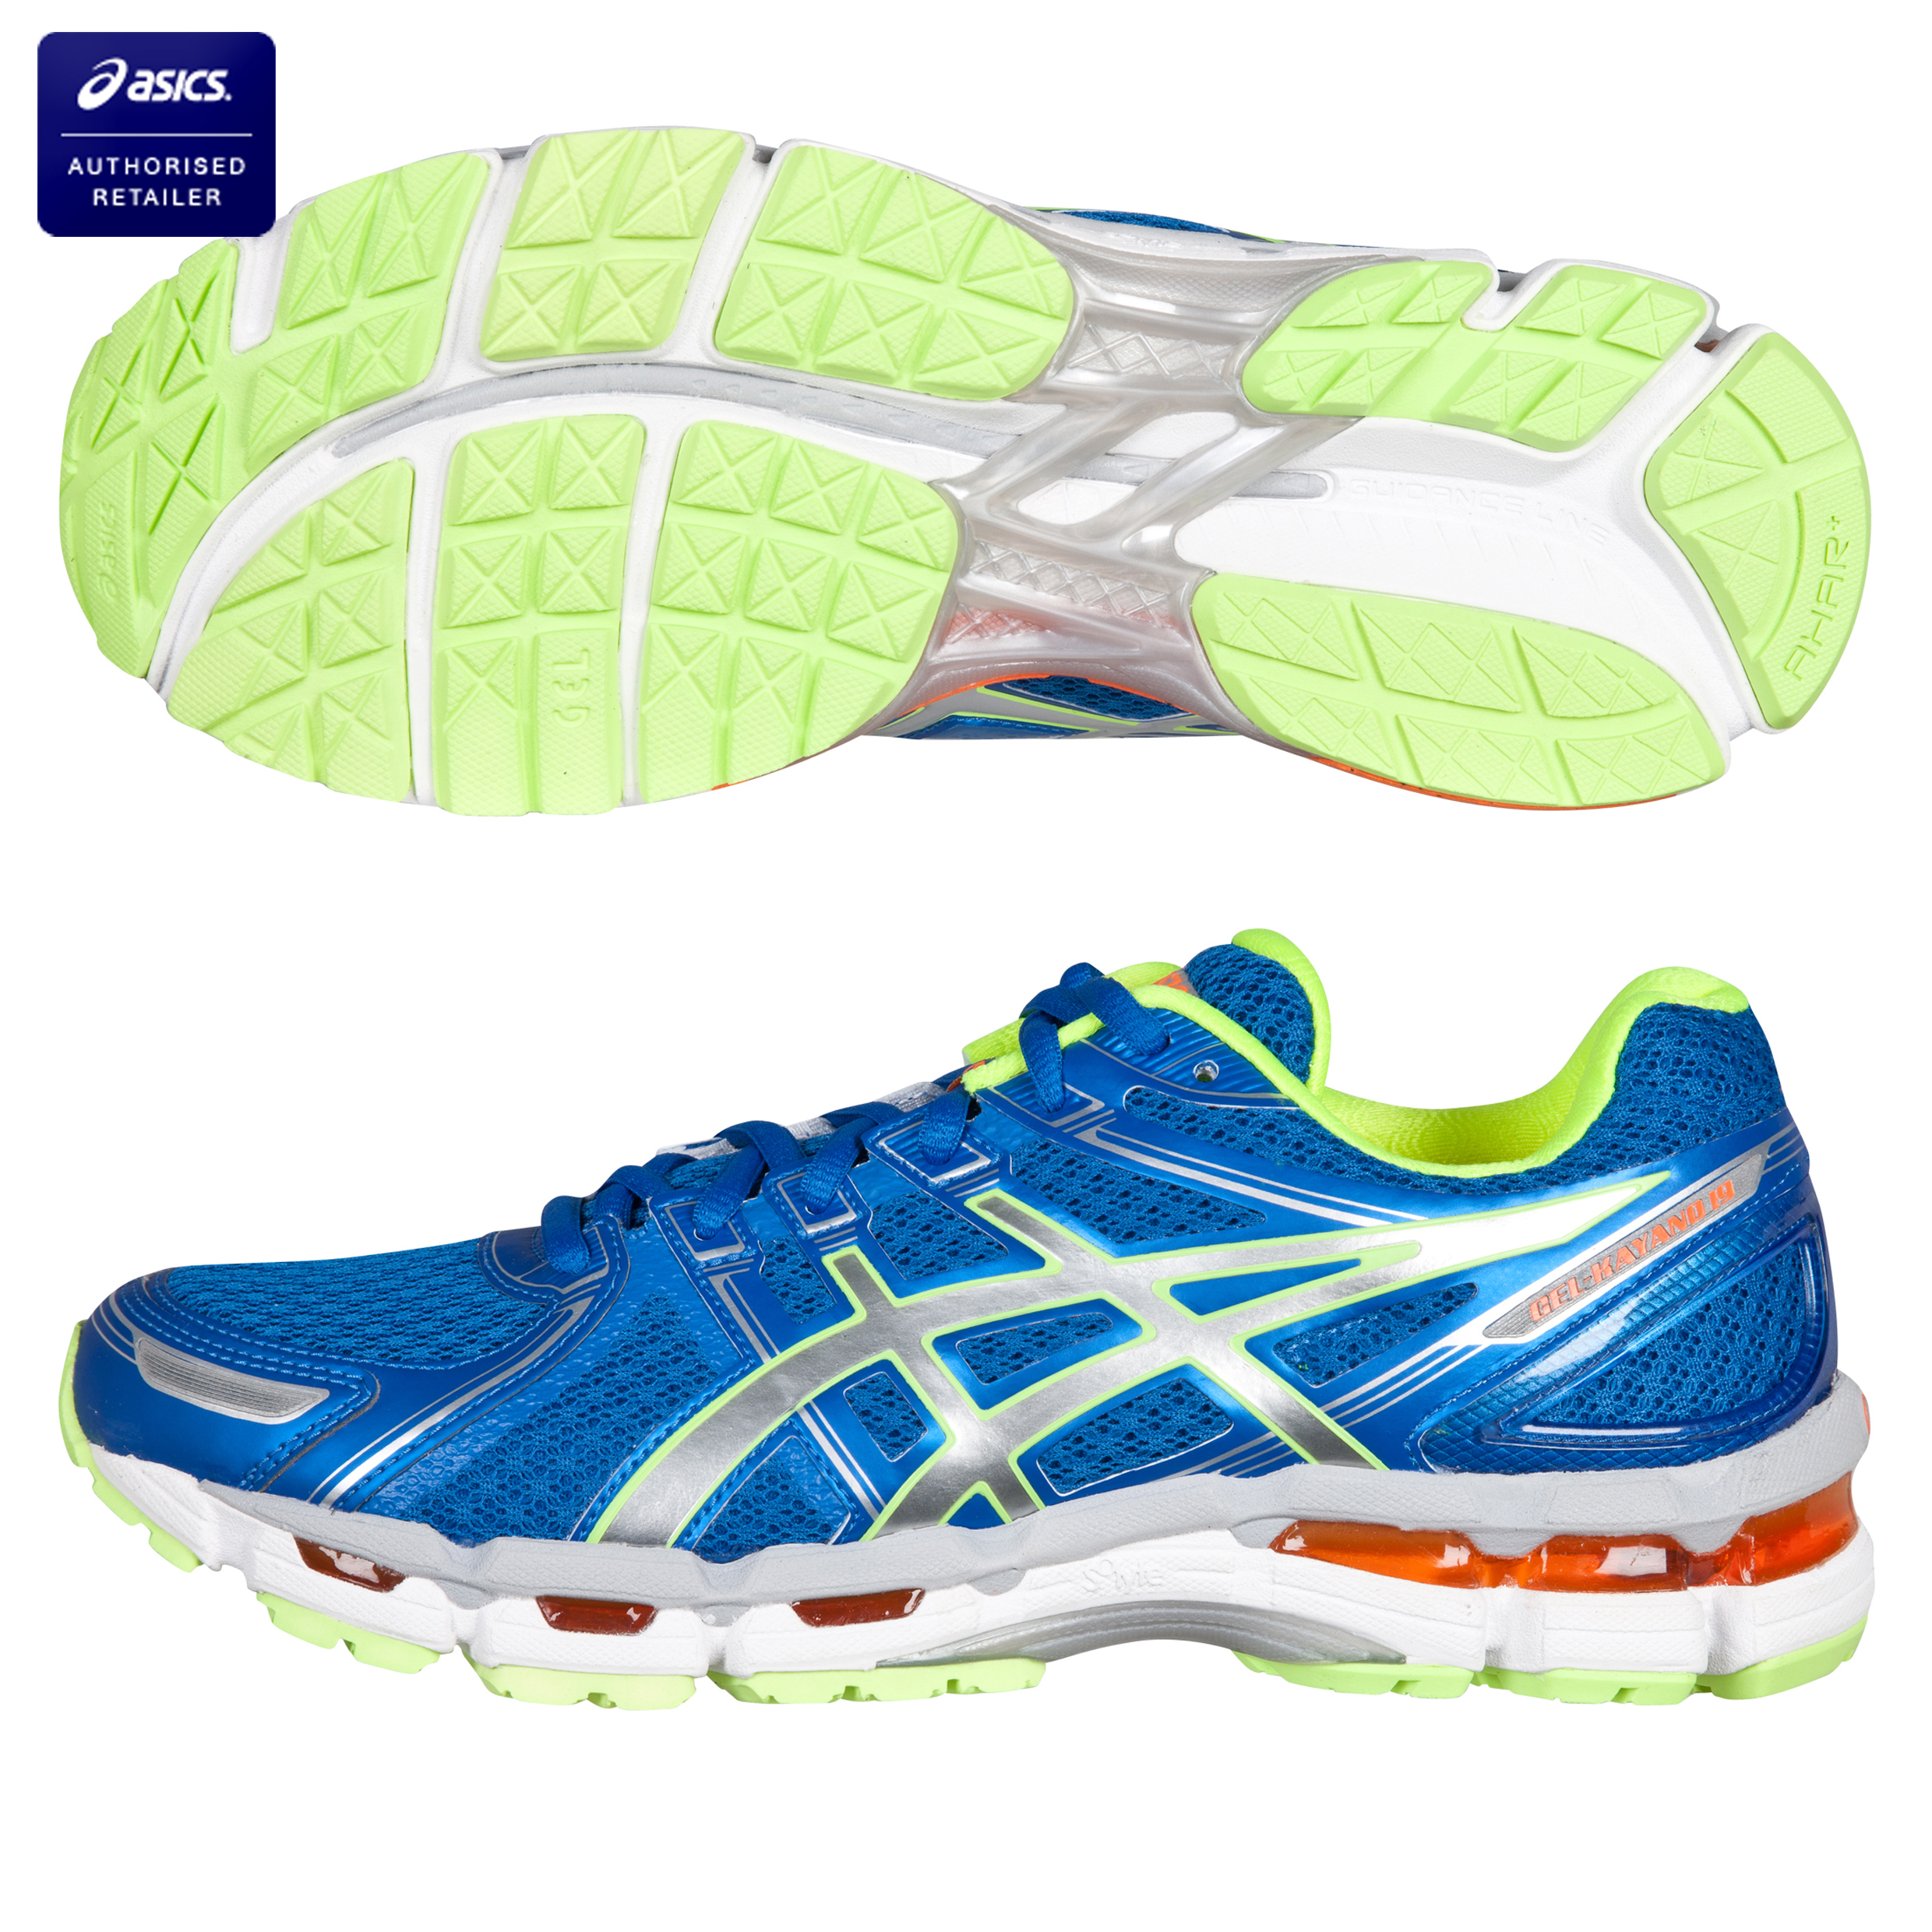 Asics Gel Kayano 19 Stability Running Trainers - Blue/White/Neon Yellow